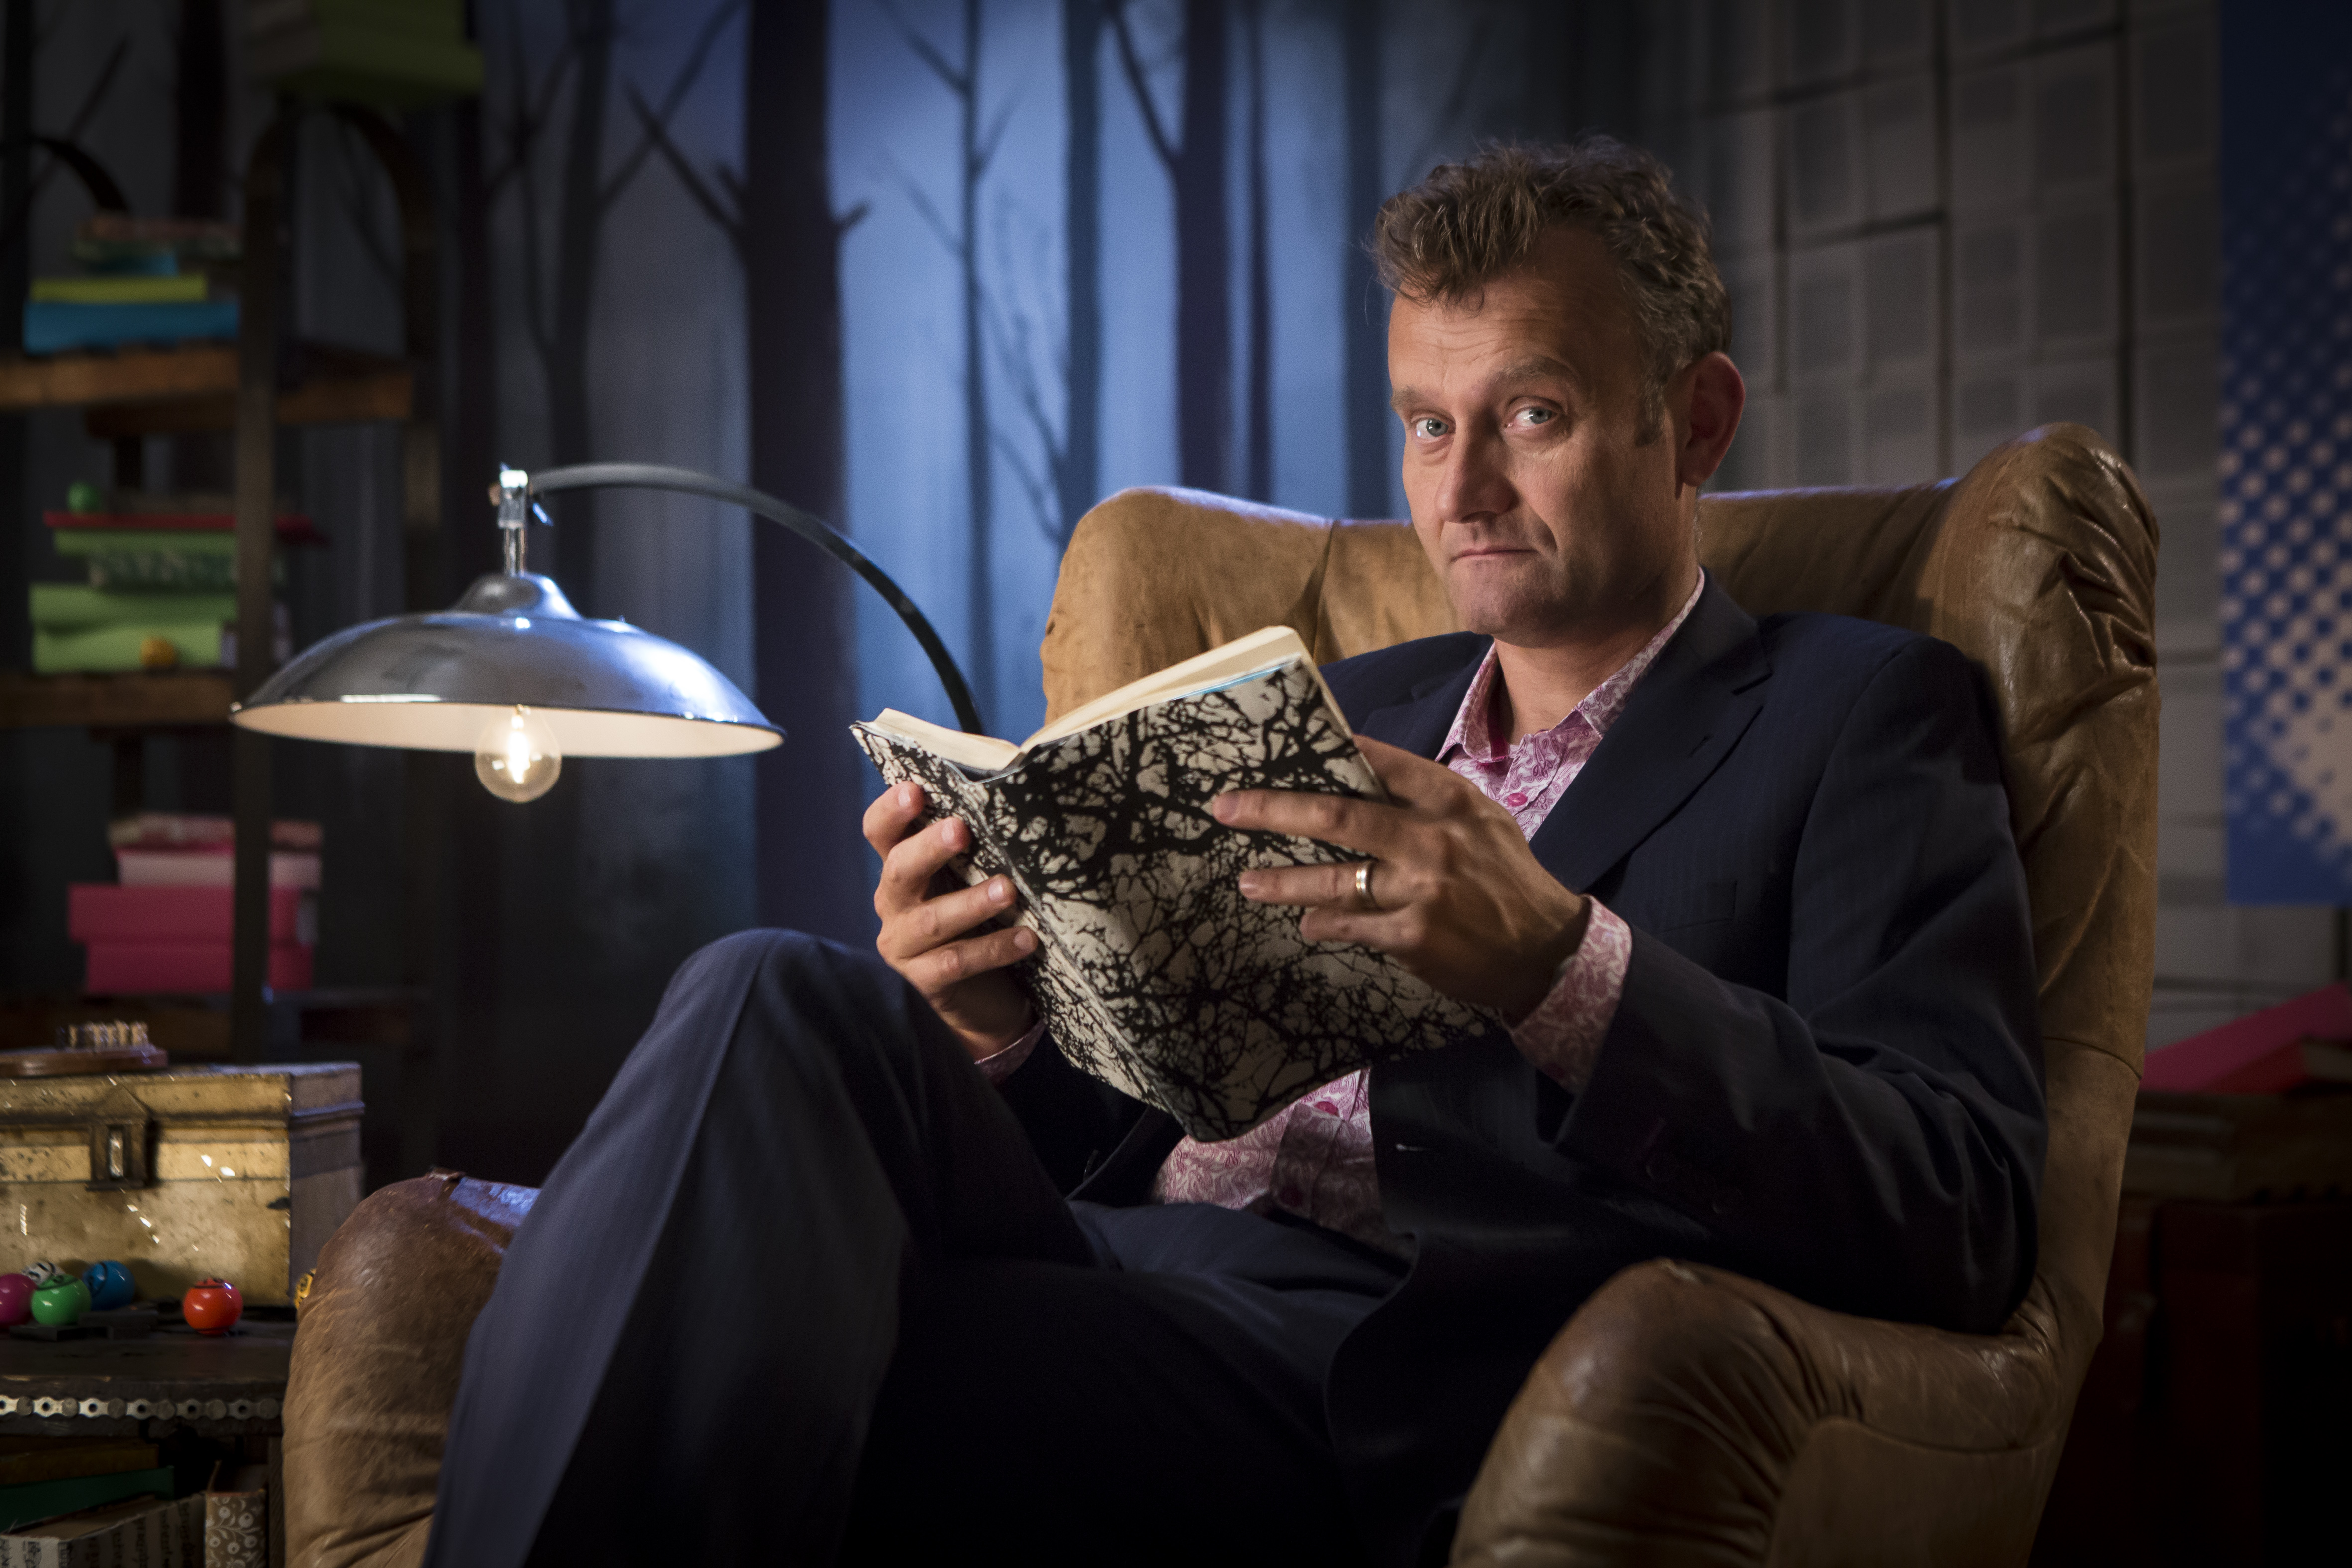 Crackanory – Episode 6 (Hugh Dennis who reads Head In The Clouds)